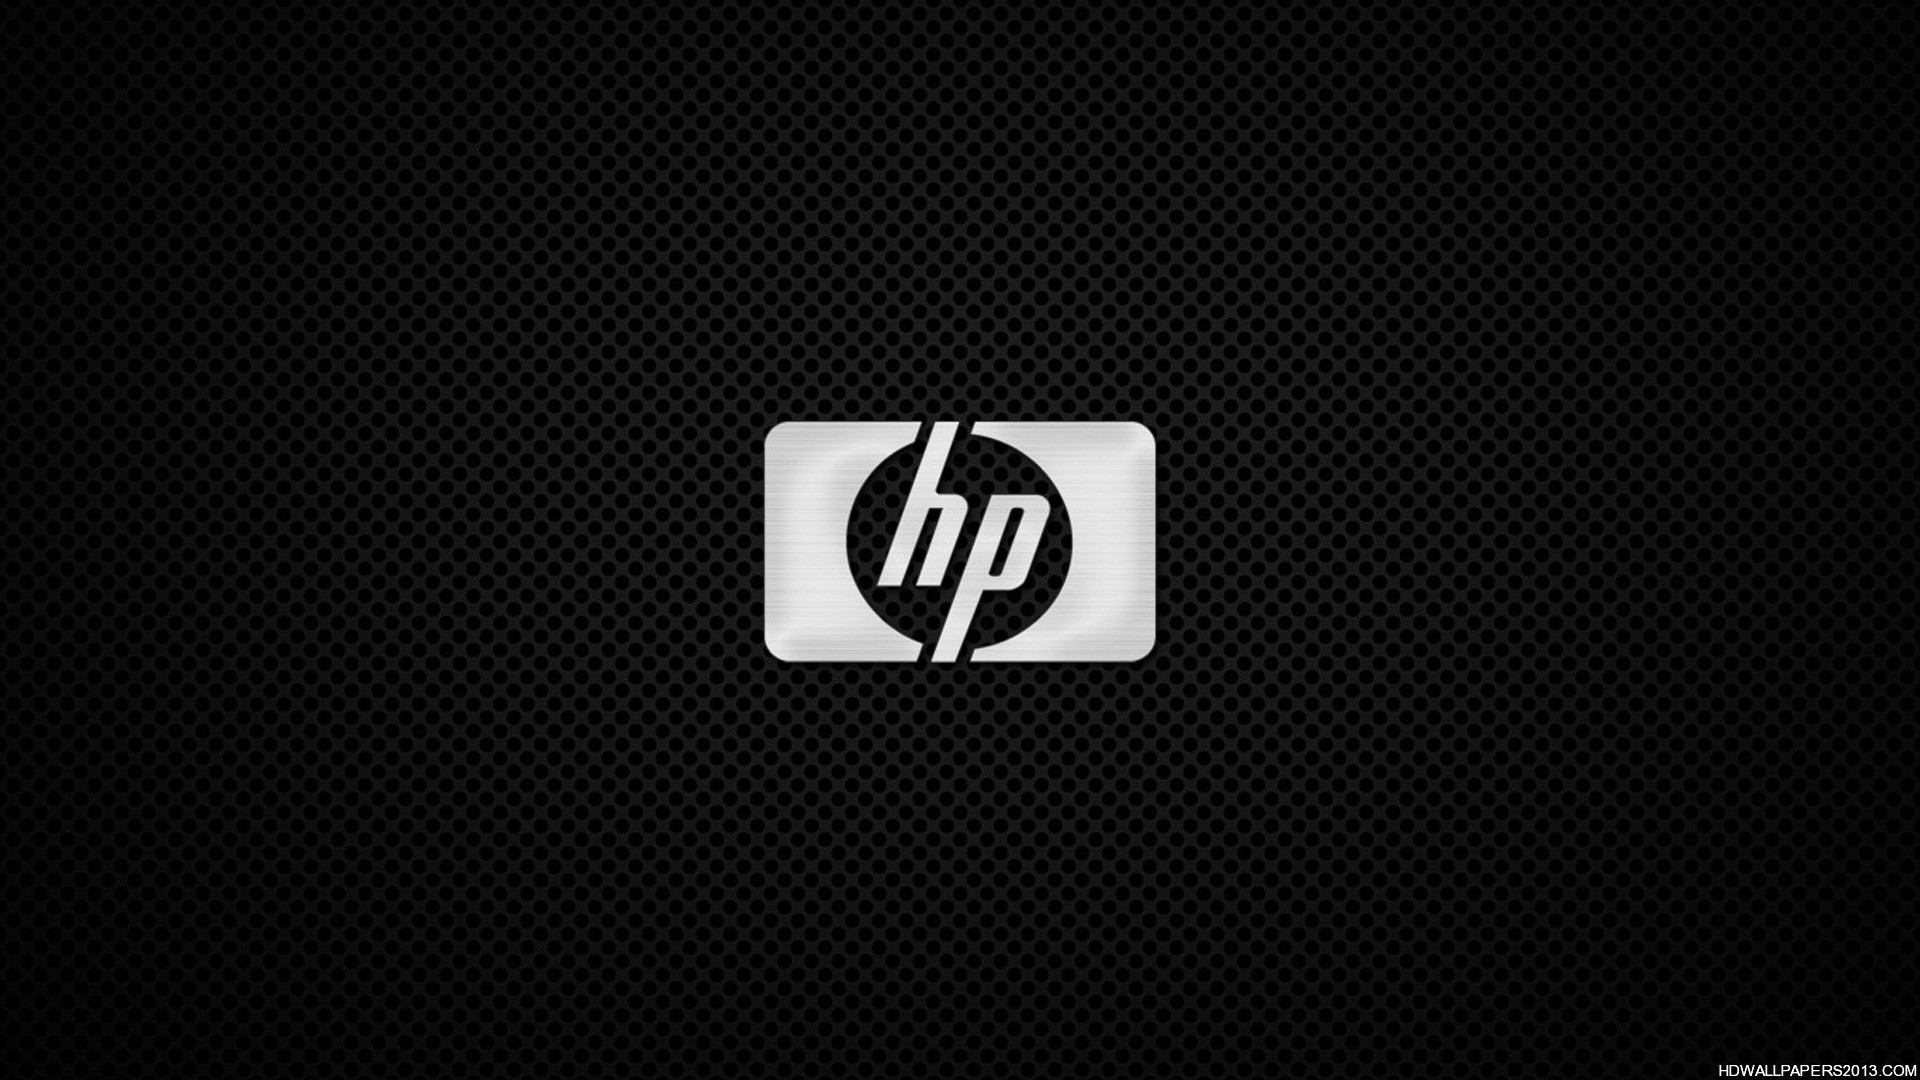 hp wallpaper for laptop | high definition wallpapers, high